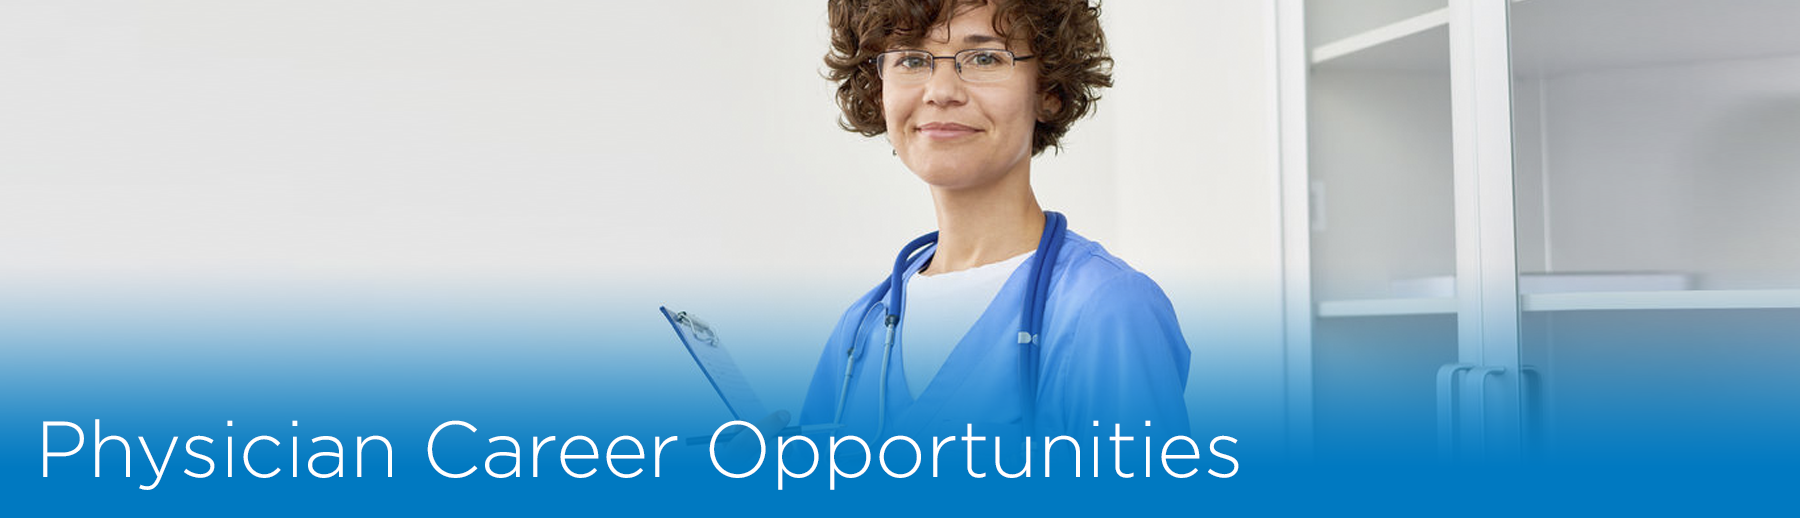 physician career banner